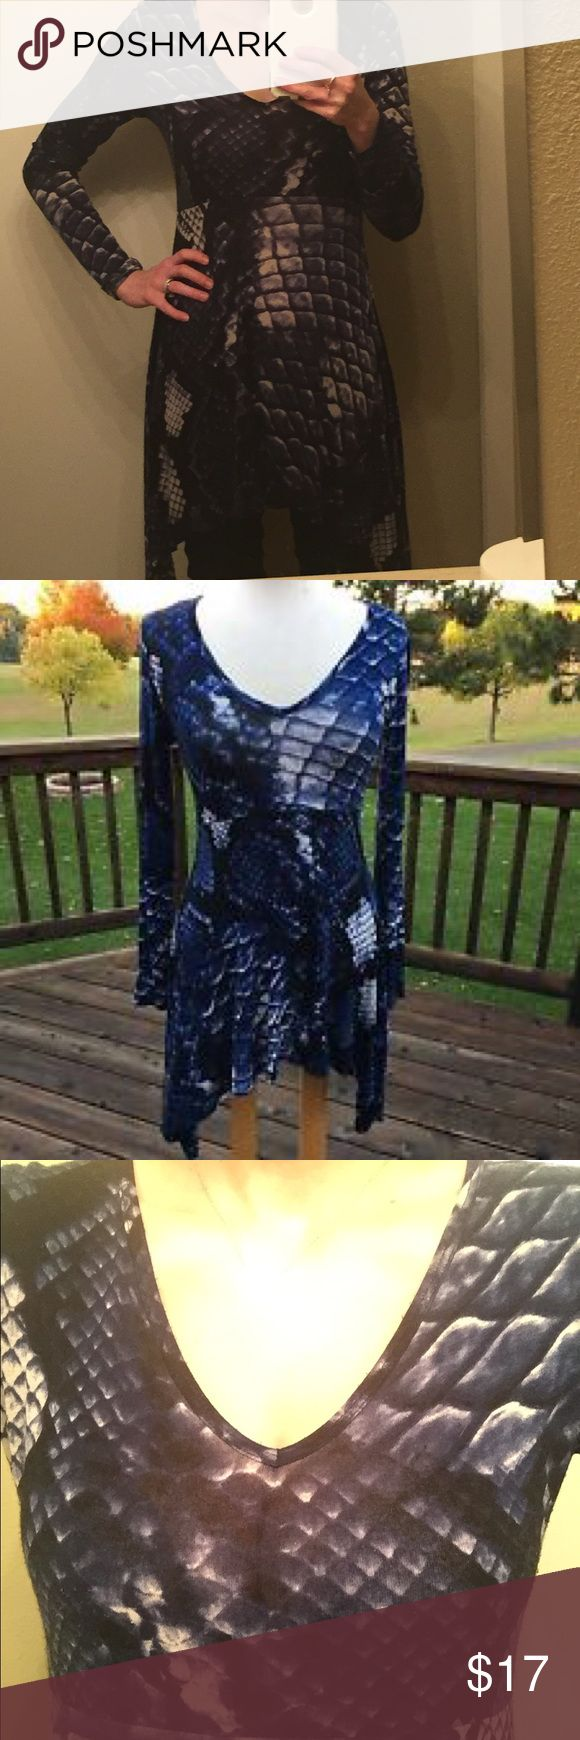 Karen Kane tunic size small Karen Kane tunic size small! Rayon and spandex. Cleaning out my closet and am open to offers Karen Kane Tops Tunics